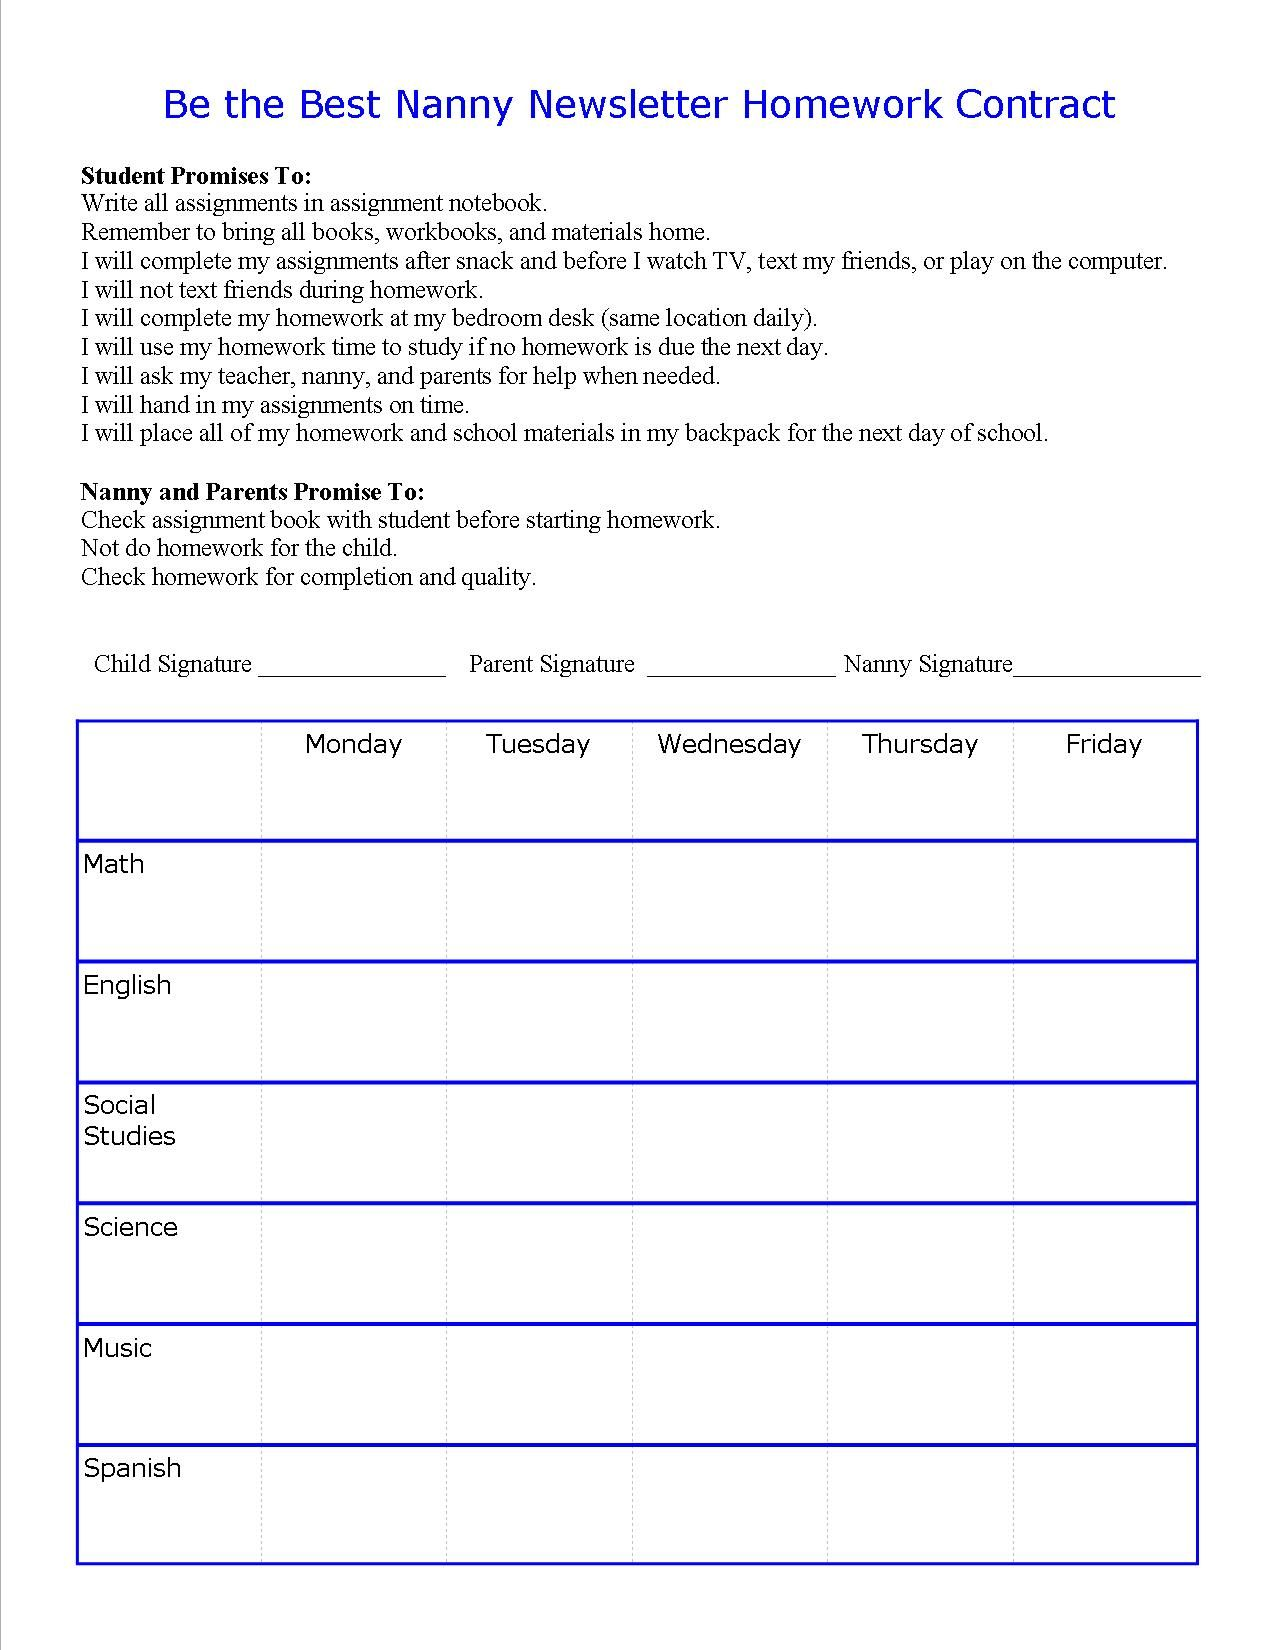 Nanny Child Homework Contract Nannies And Au Pairs Are Essential Homework Helpers Make A